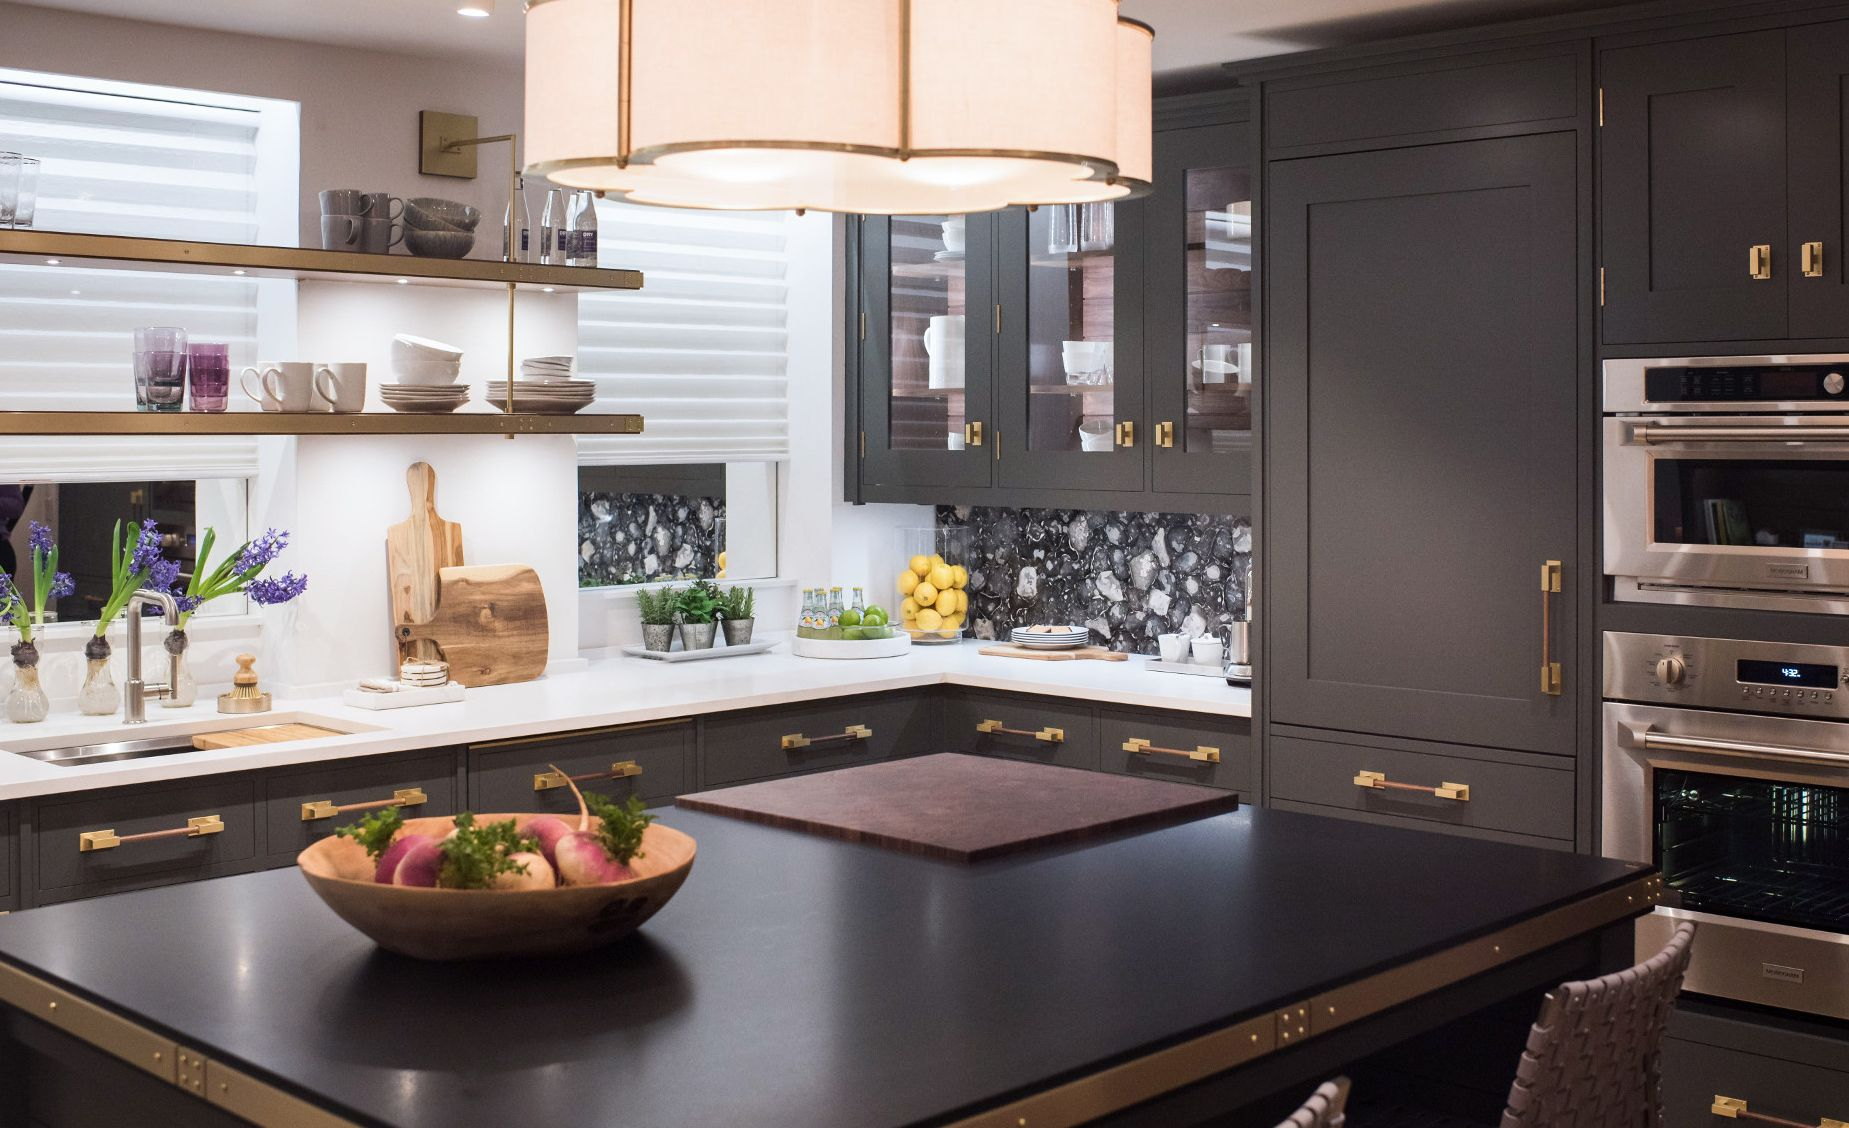 Cambria Blackpool Matte countertops create a darker kitchen palette with Cambria White Cliff Matte on the perimeter.